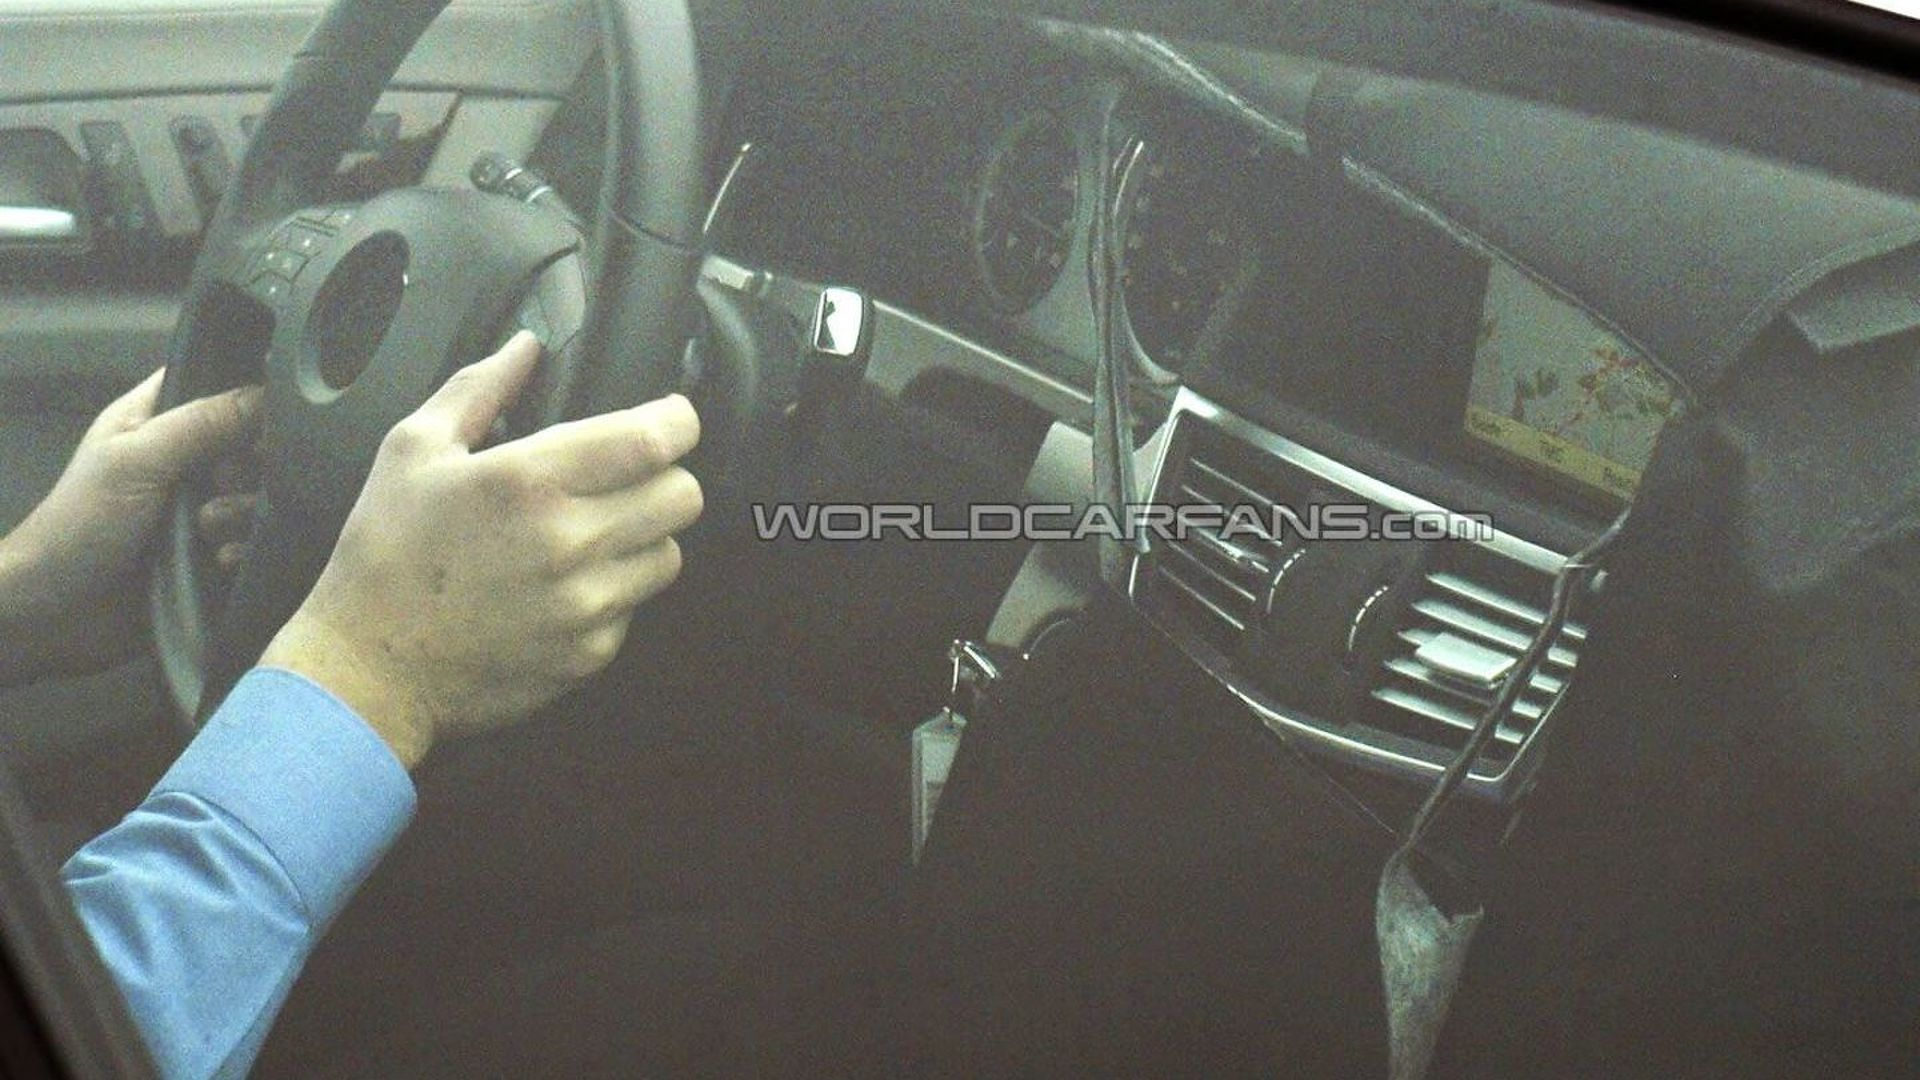 2011 Mercedes CLS Prototype Caught with Slightly Uncovered Interior